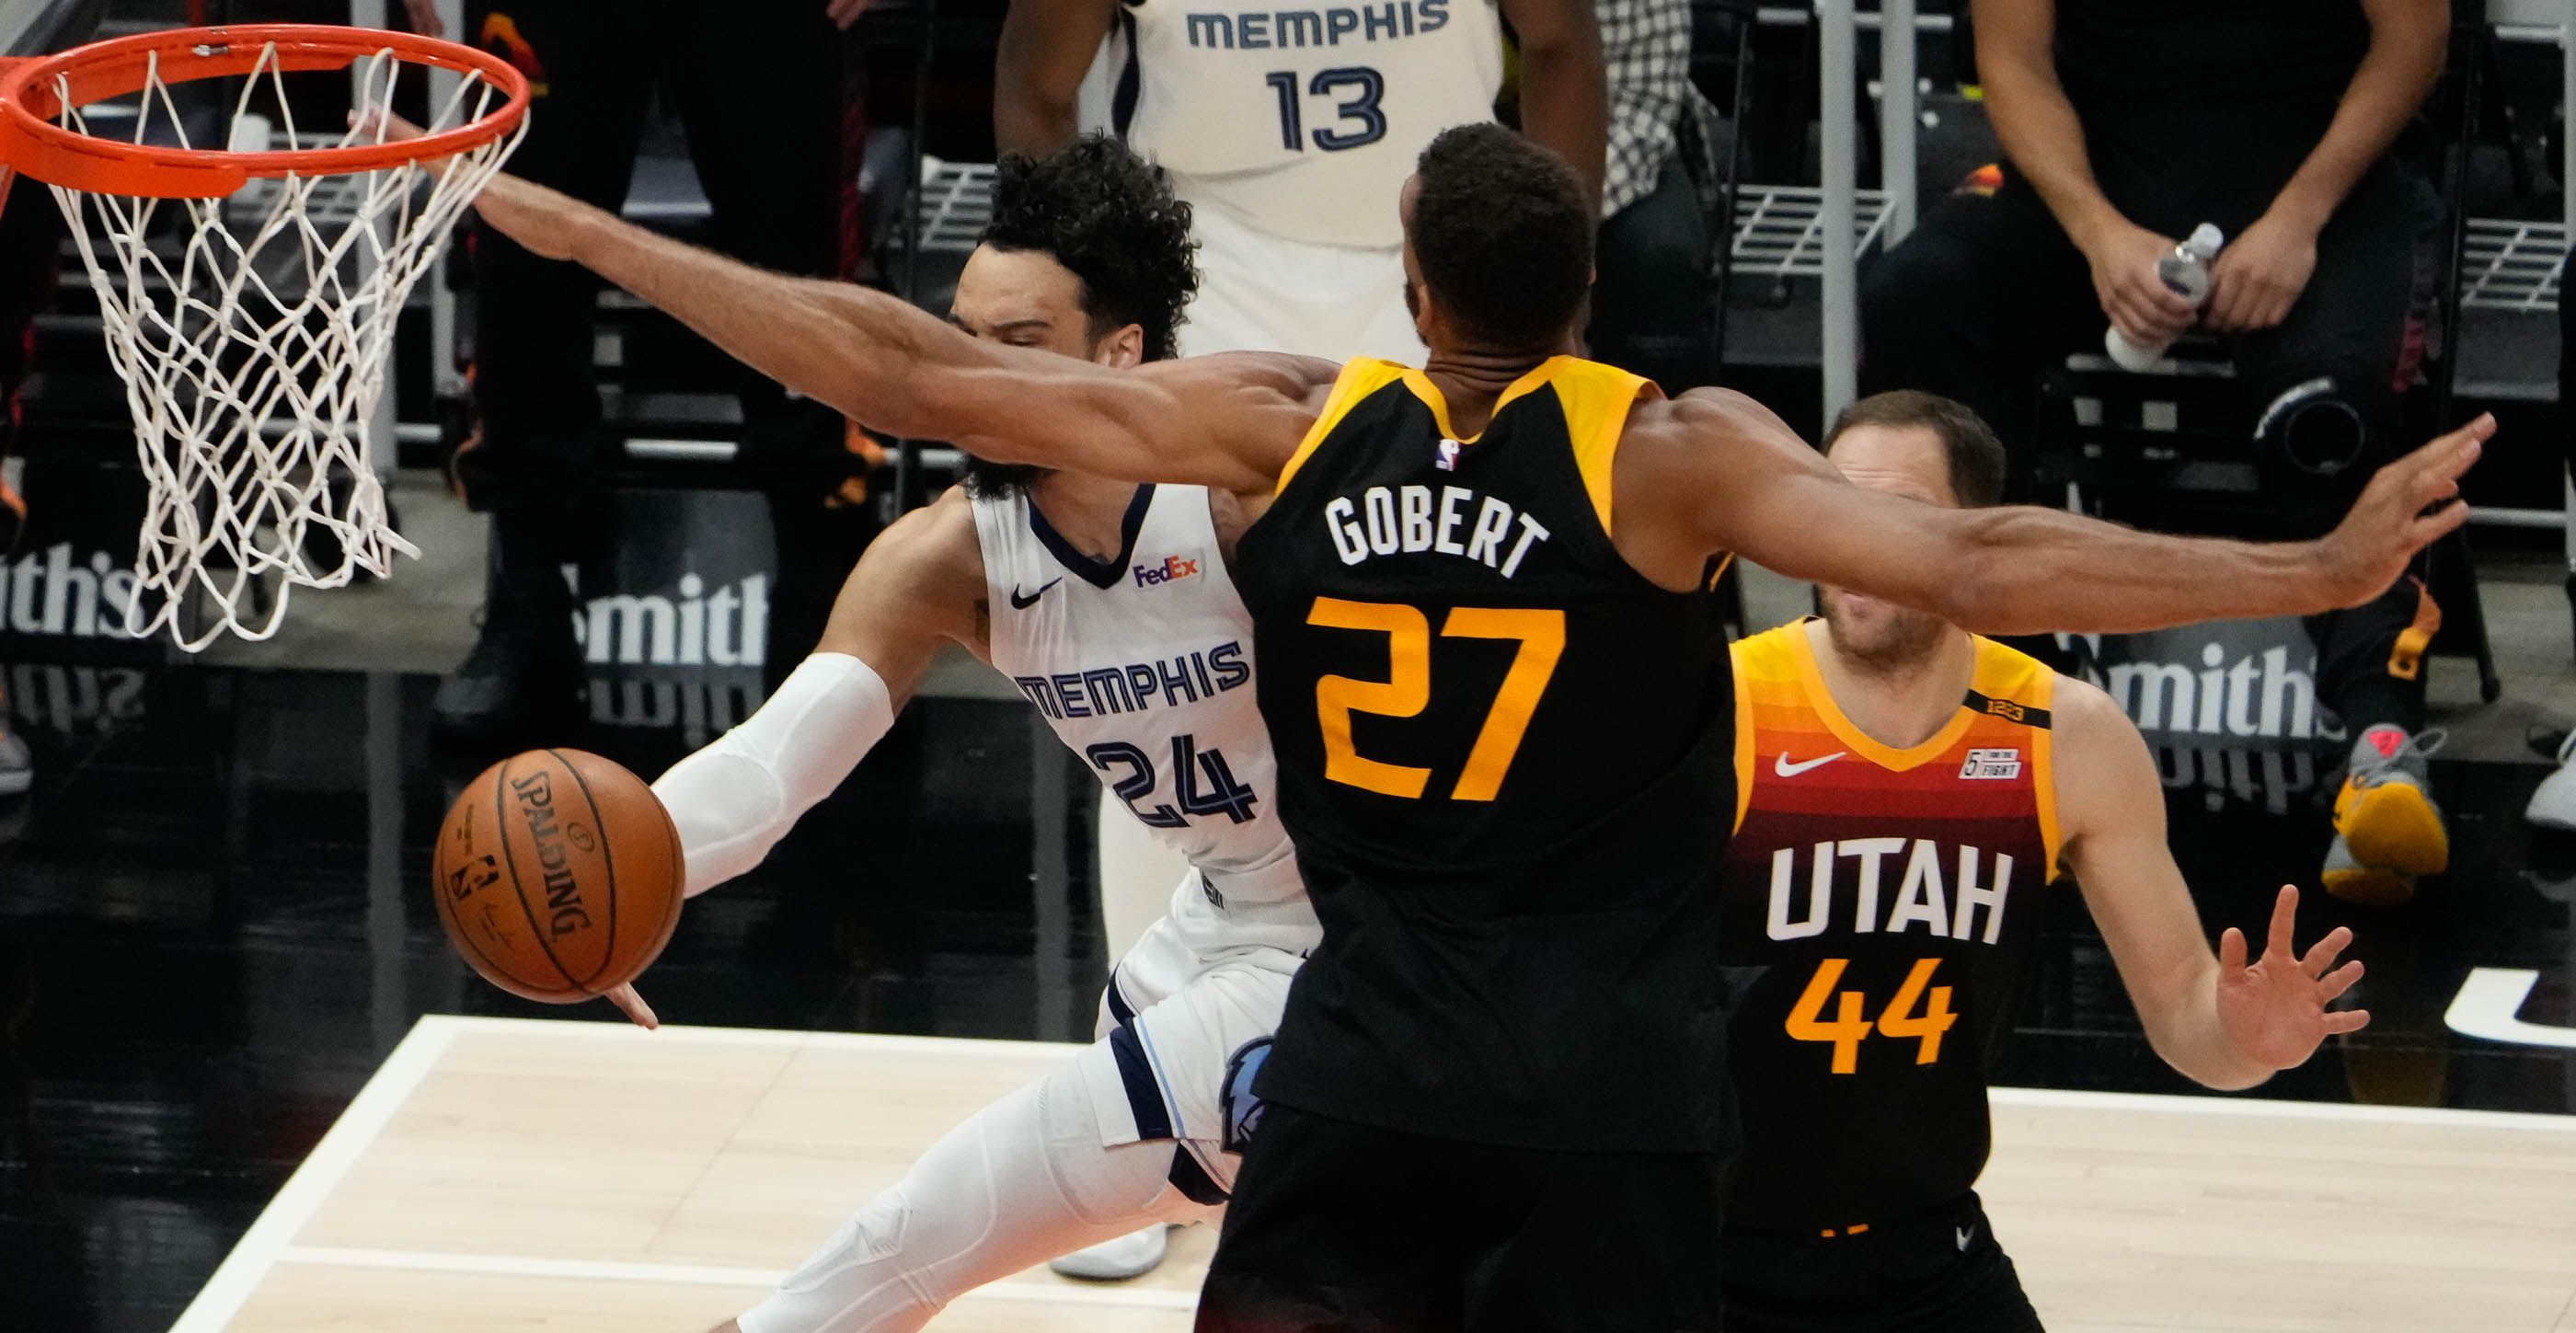 (Francisco Kjolseth | The Salt Lake Tribune) Memphis Grizzlies forward Dillon Brooks (24) tries to get past the wingspan of Utah Jazz center Rudy Gobert (27) in the first half of Game 5 of an NBA basketball first-round playoff series Wednesday, June 2, 2021, in Salt Lake City, UT.